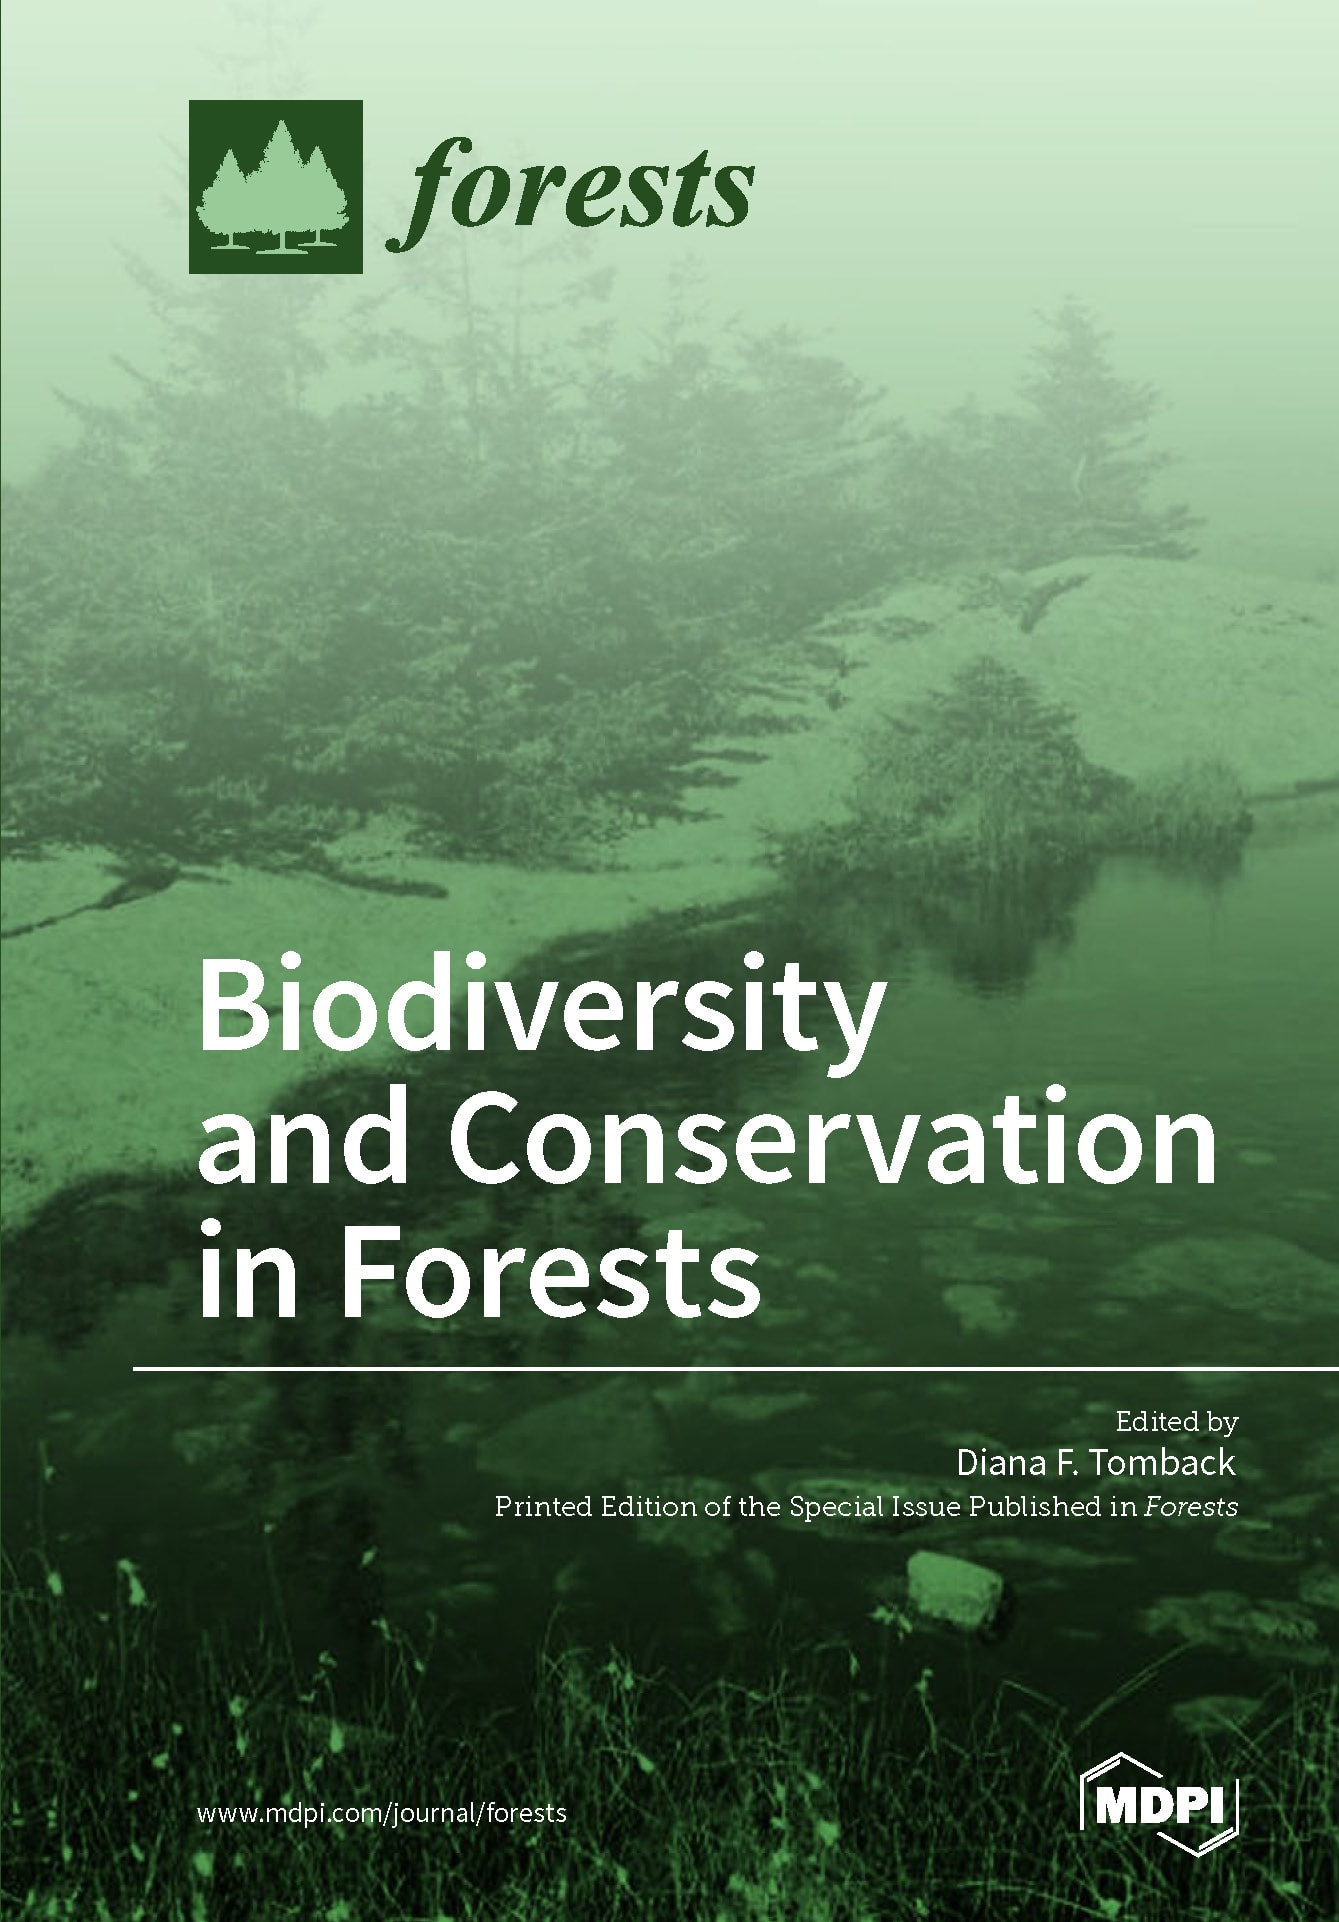 Biodiversity and Conservation in Forests